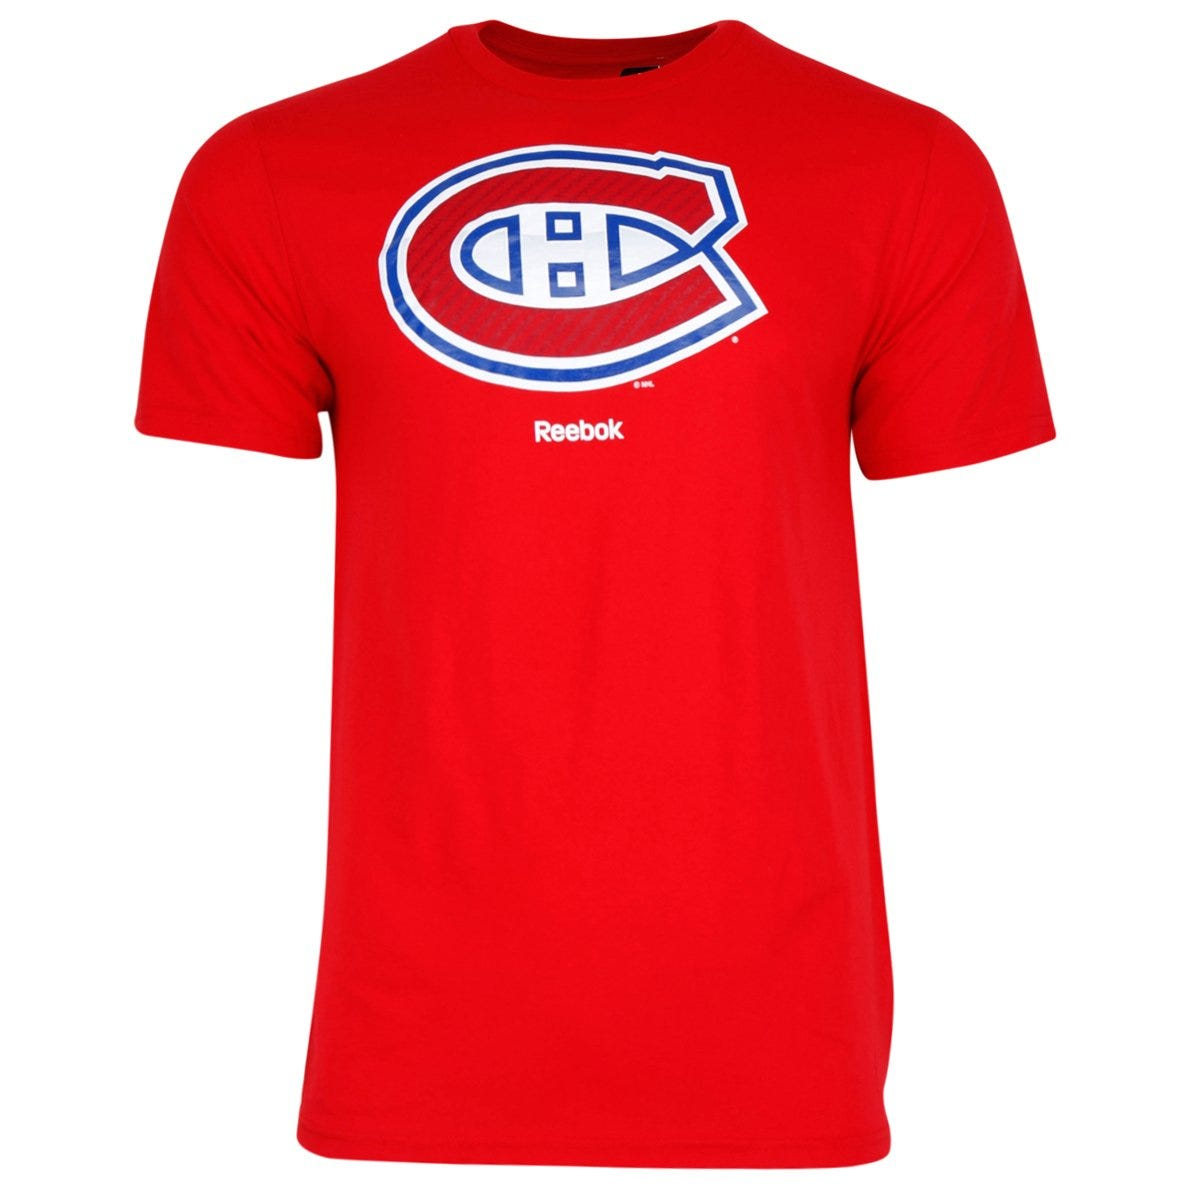 Collectibles reebok zonehockey hockey protective gear 1798 more details montreal canadiens reebok face off carbon logo sr tee shirt buycottarizona Image collections